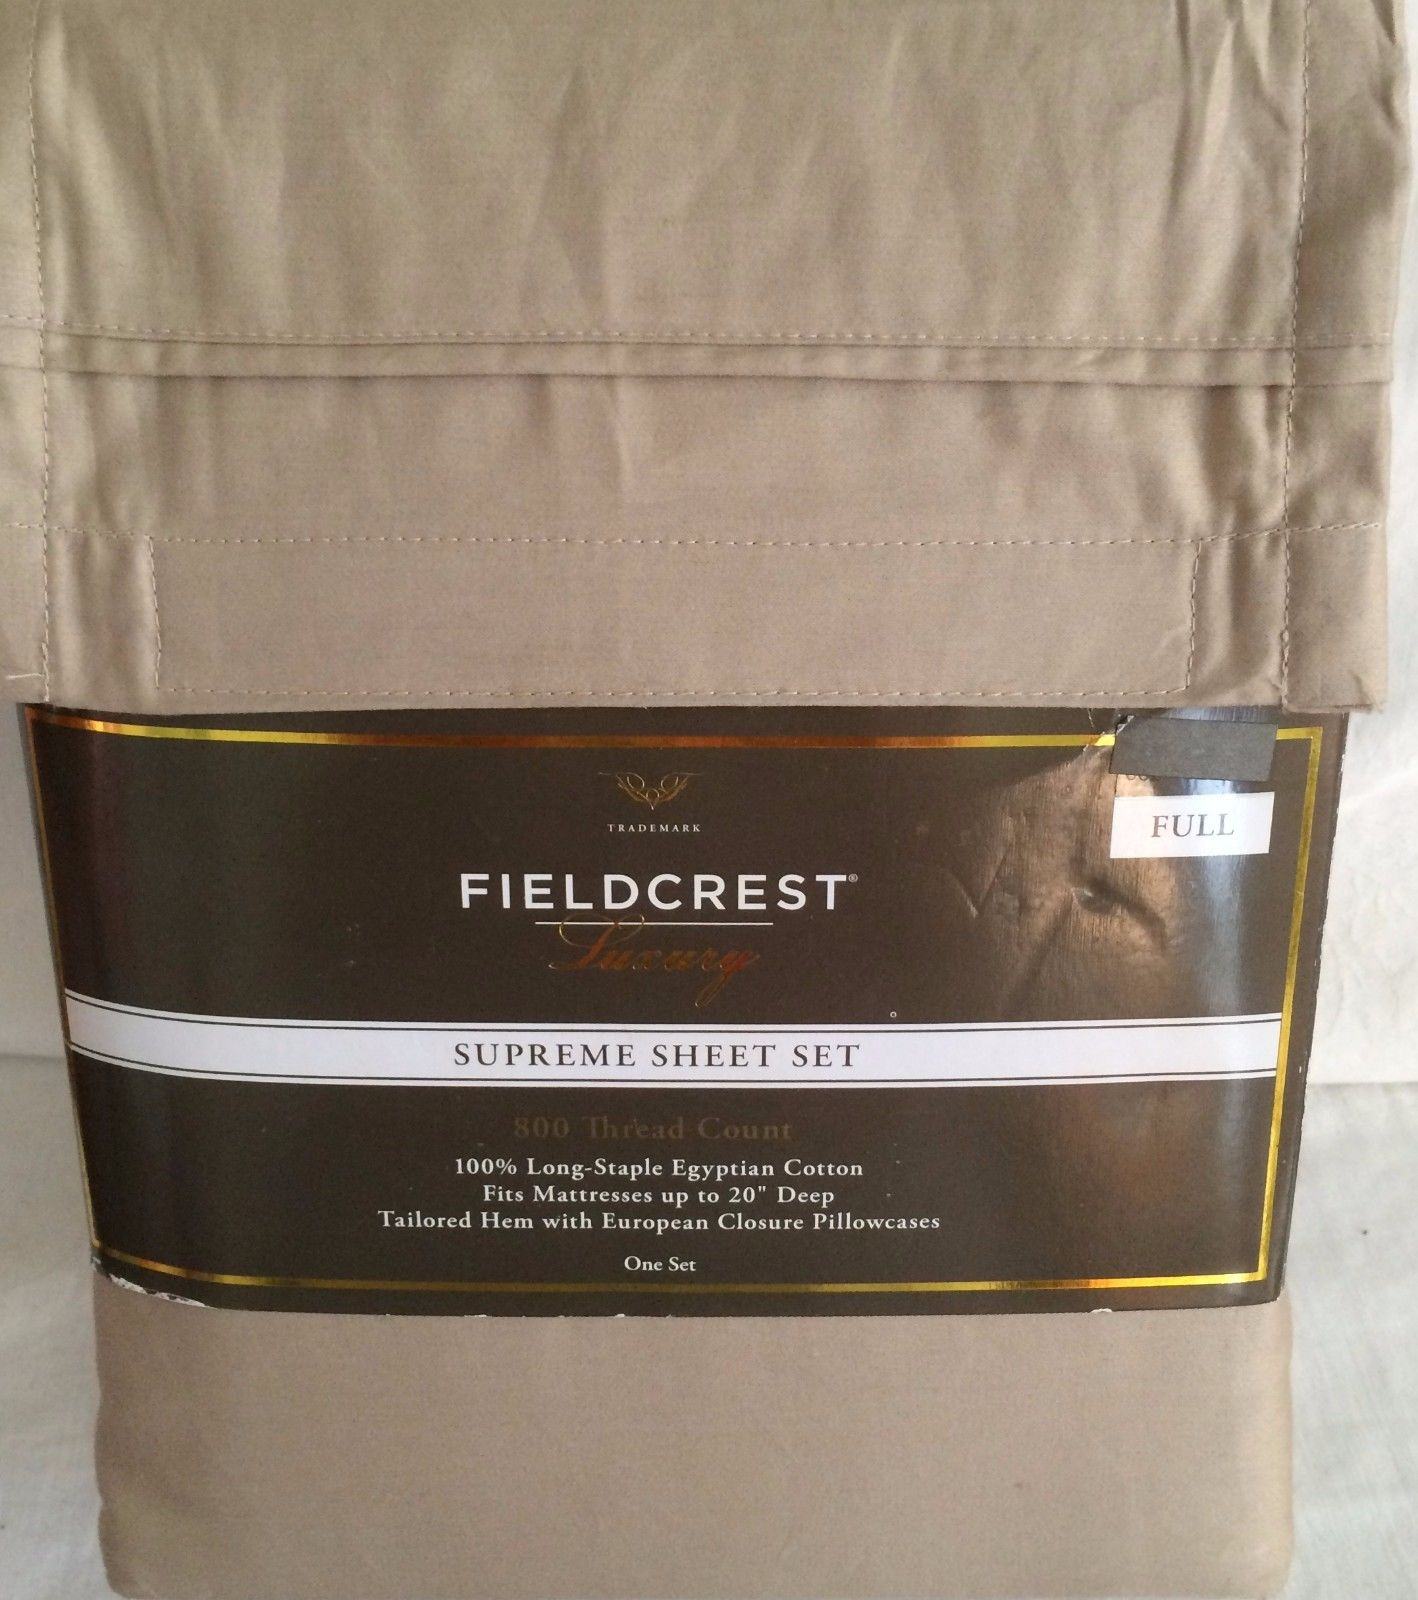 Fieldcrest Luxury Sheets | Fieldcrest Luxury Towels | Wamsutta Bamboo Sheets